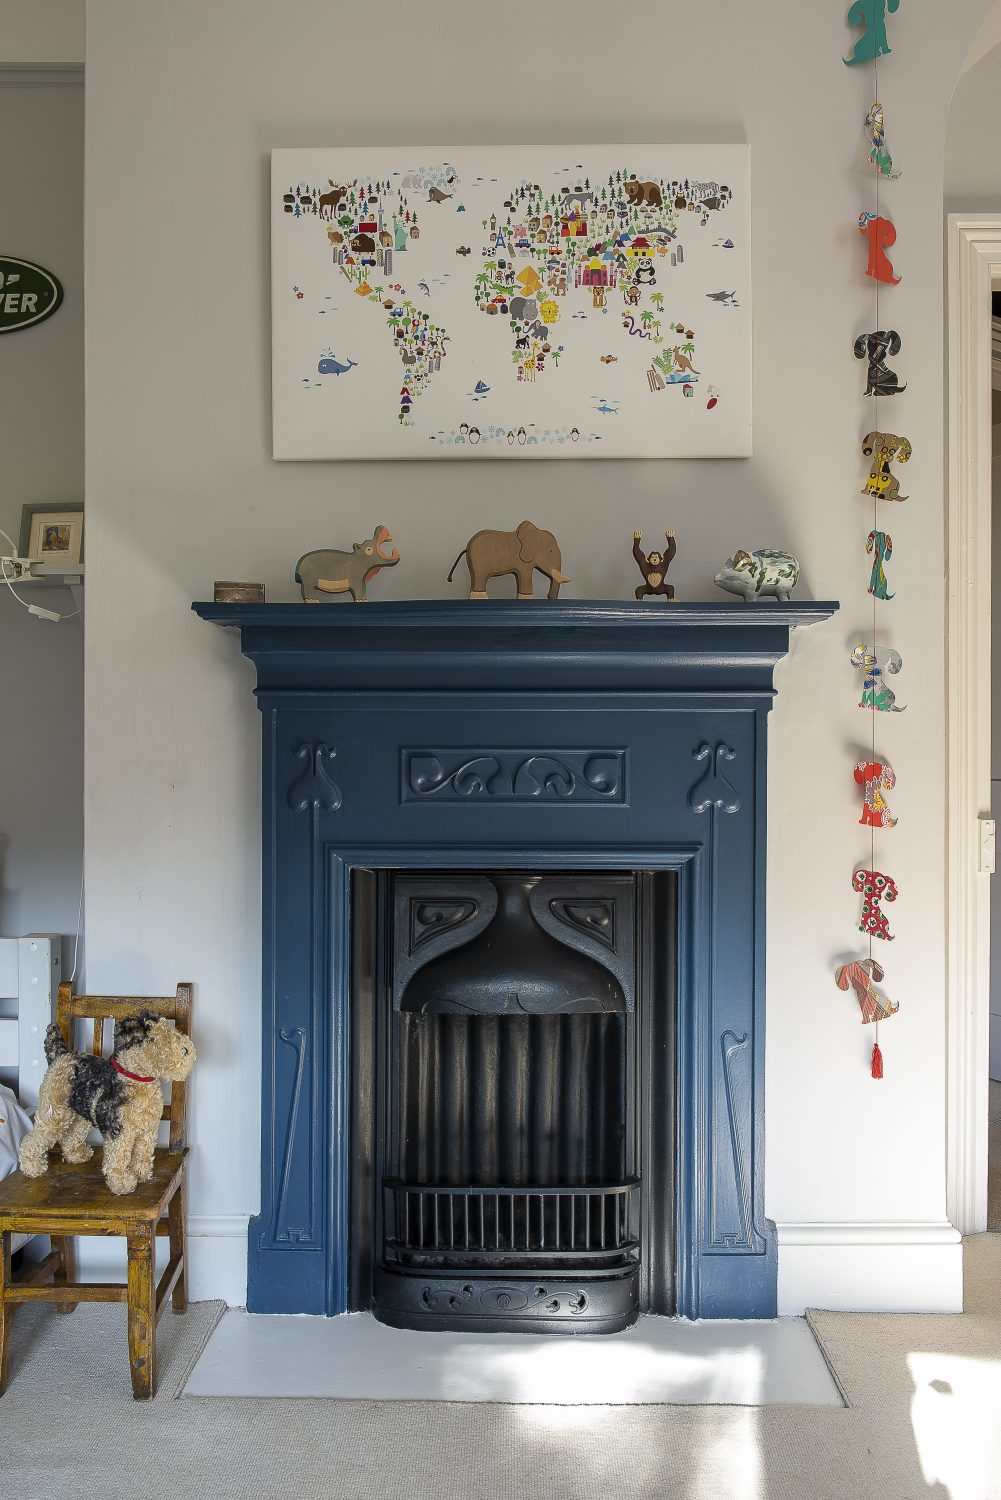 In the couple's son's room, Farrow & Ball's Stiffkey blue used for the fireplace works well with the red Anglepoise and yellow lampshade